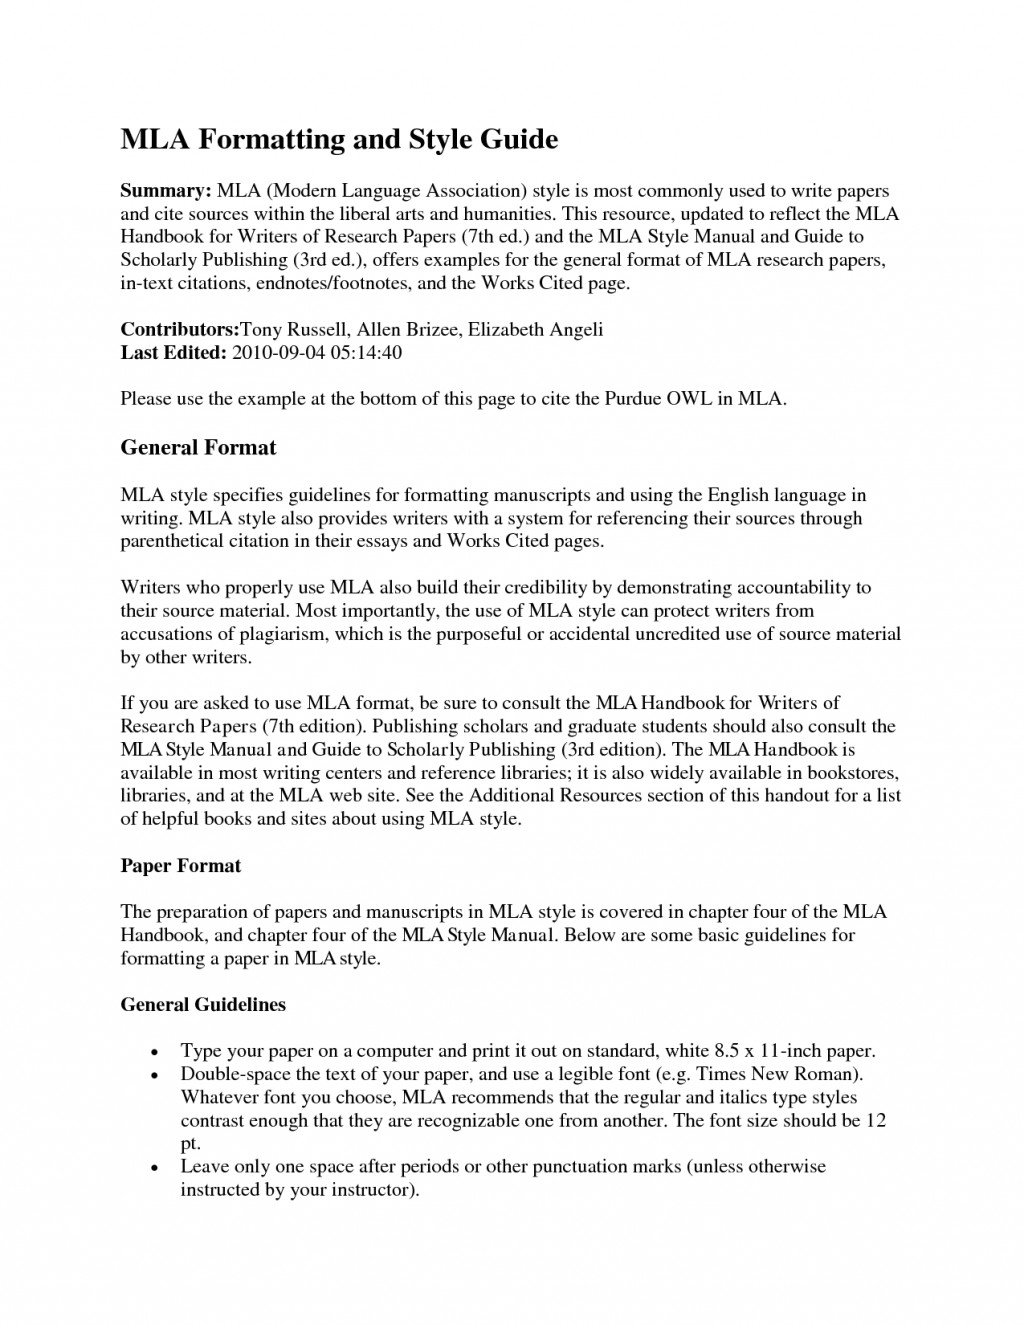 018 Mla Essay Headings Format Section Example Heading Proper For Title Italicized Underlined Paper Page In Multiple Authors Archaicawful Research Works Cited College Large